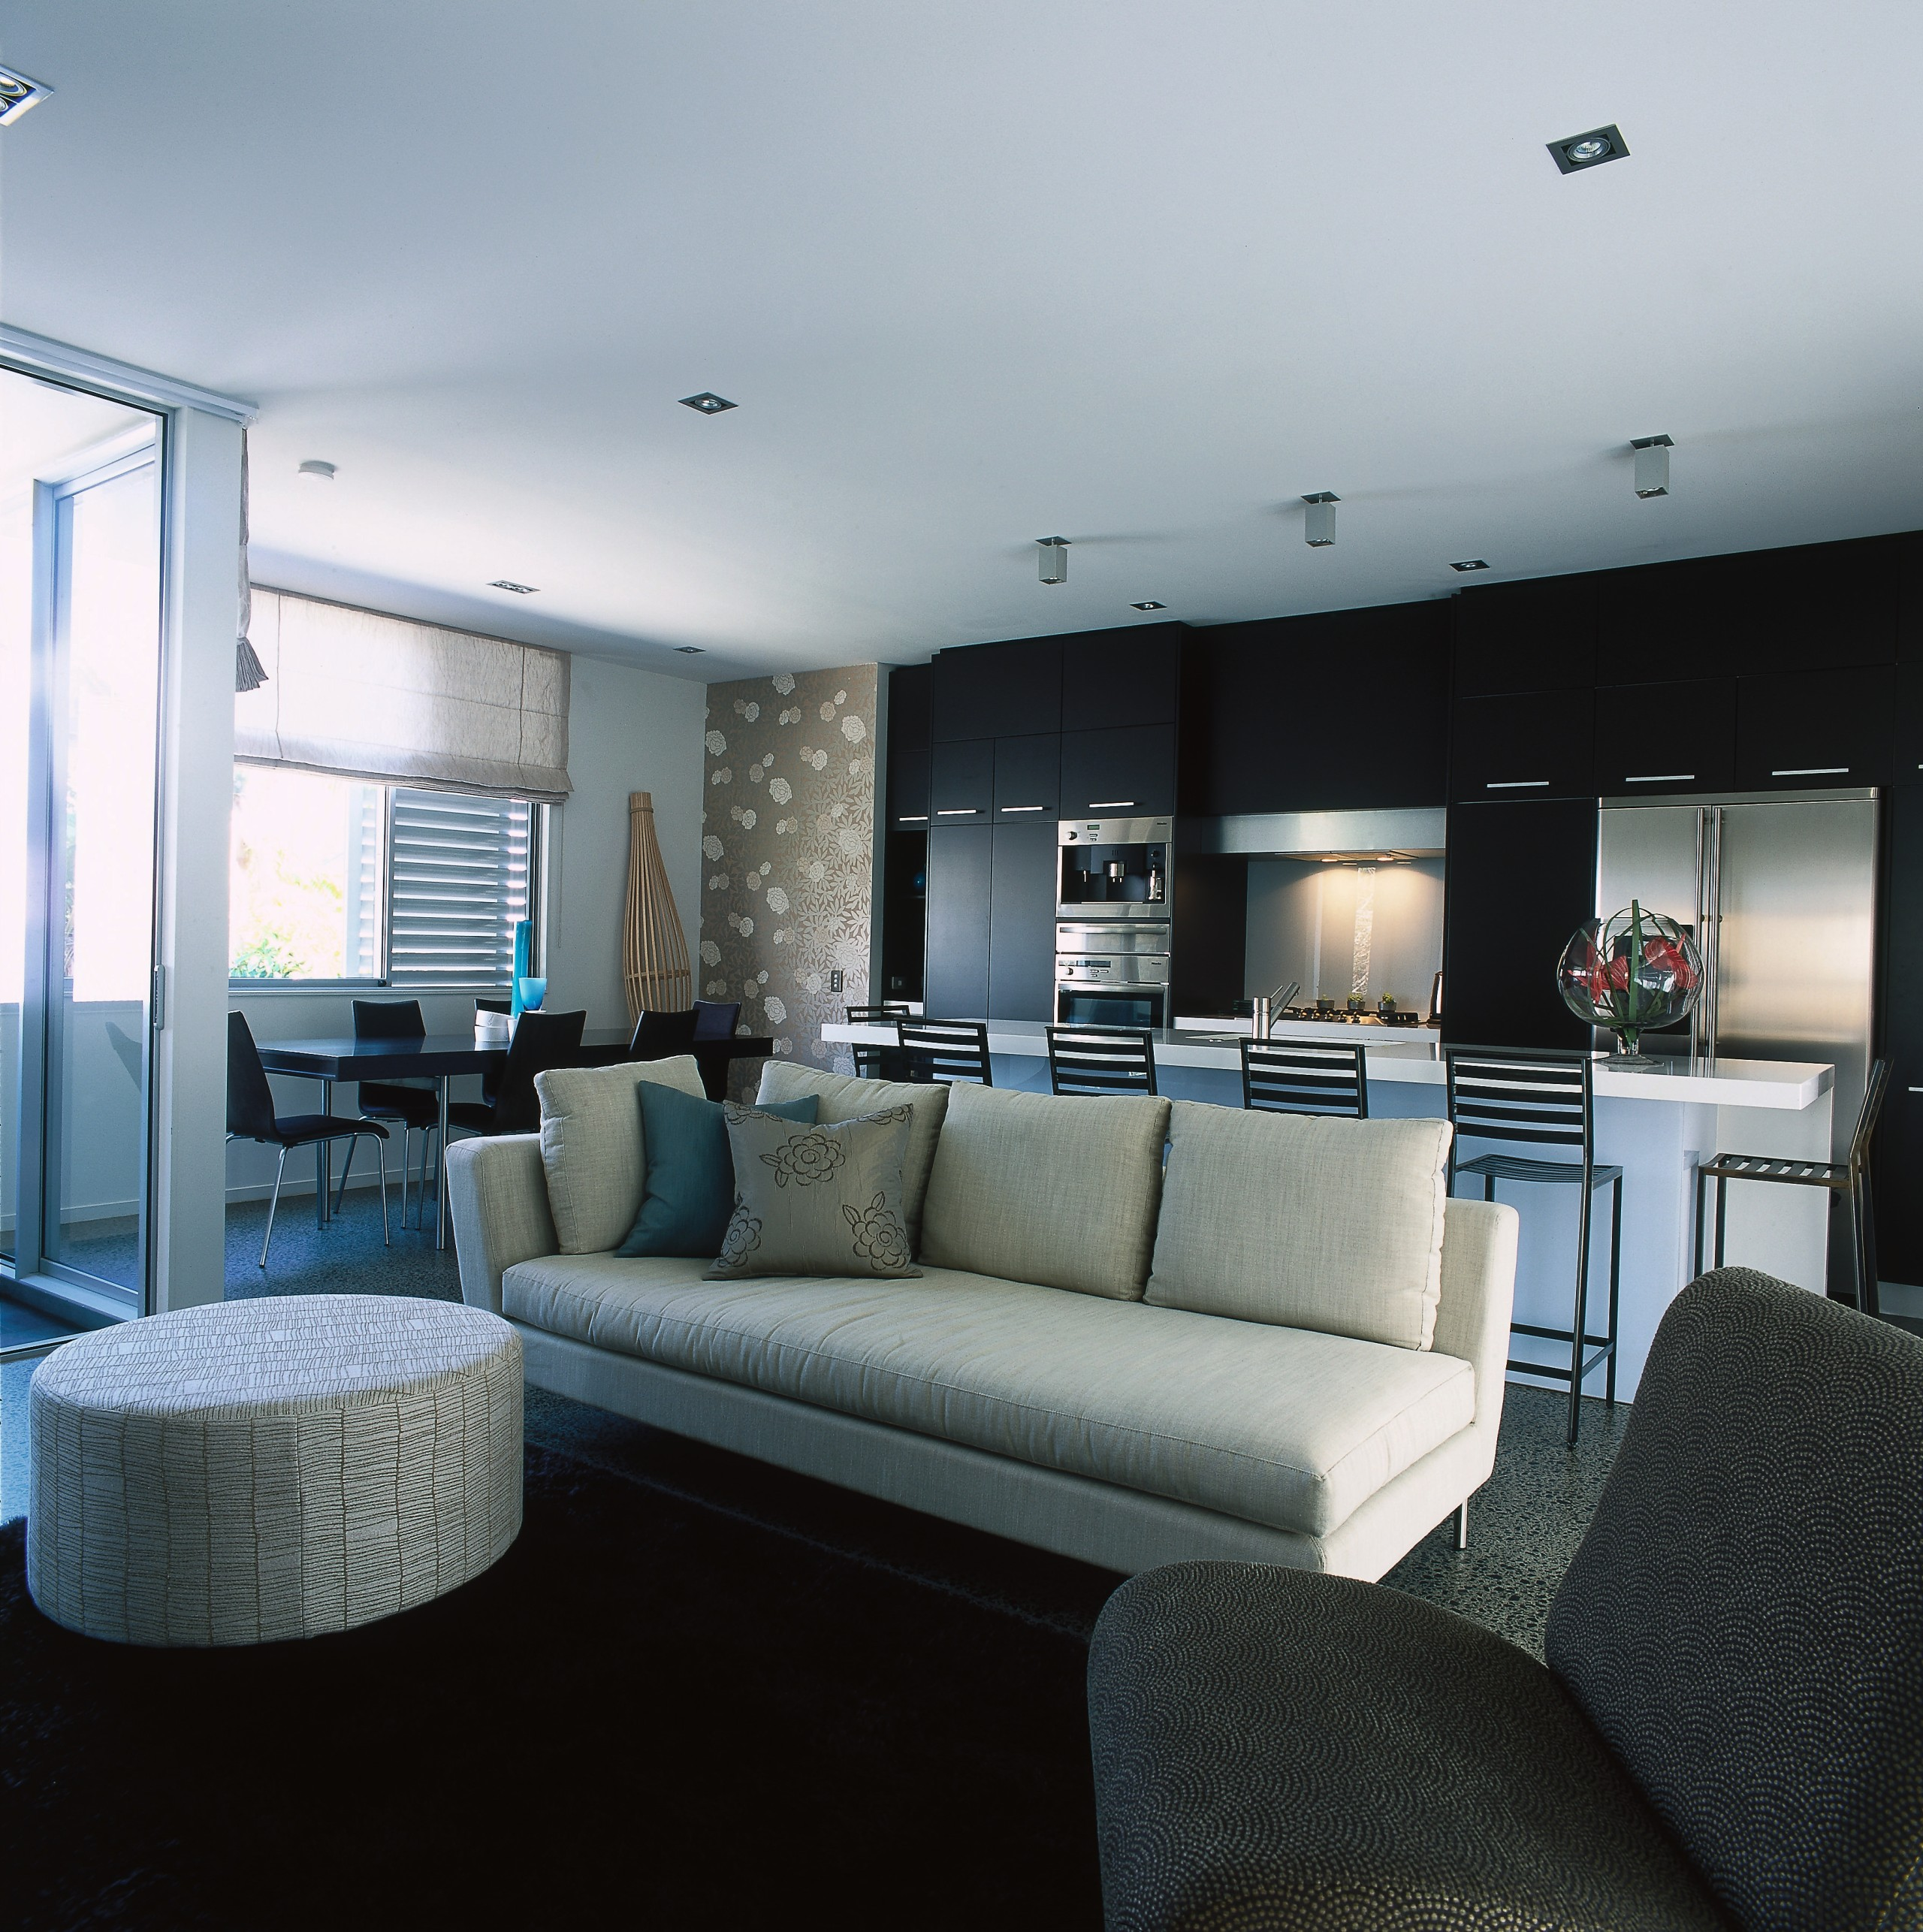 View of the living area - View of apartment, architecture, interior design, living room, property, real estate, room, gray, black